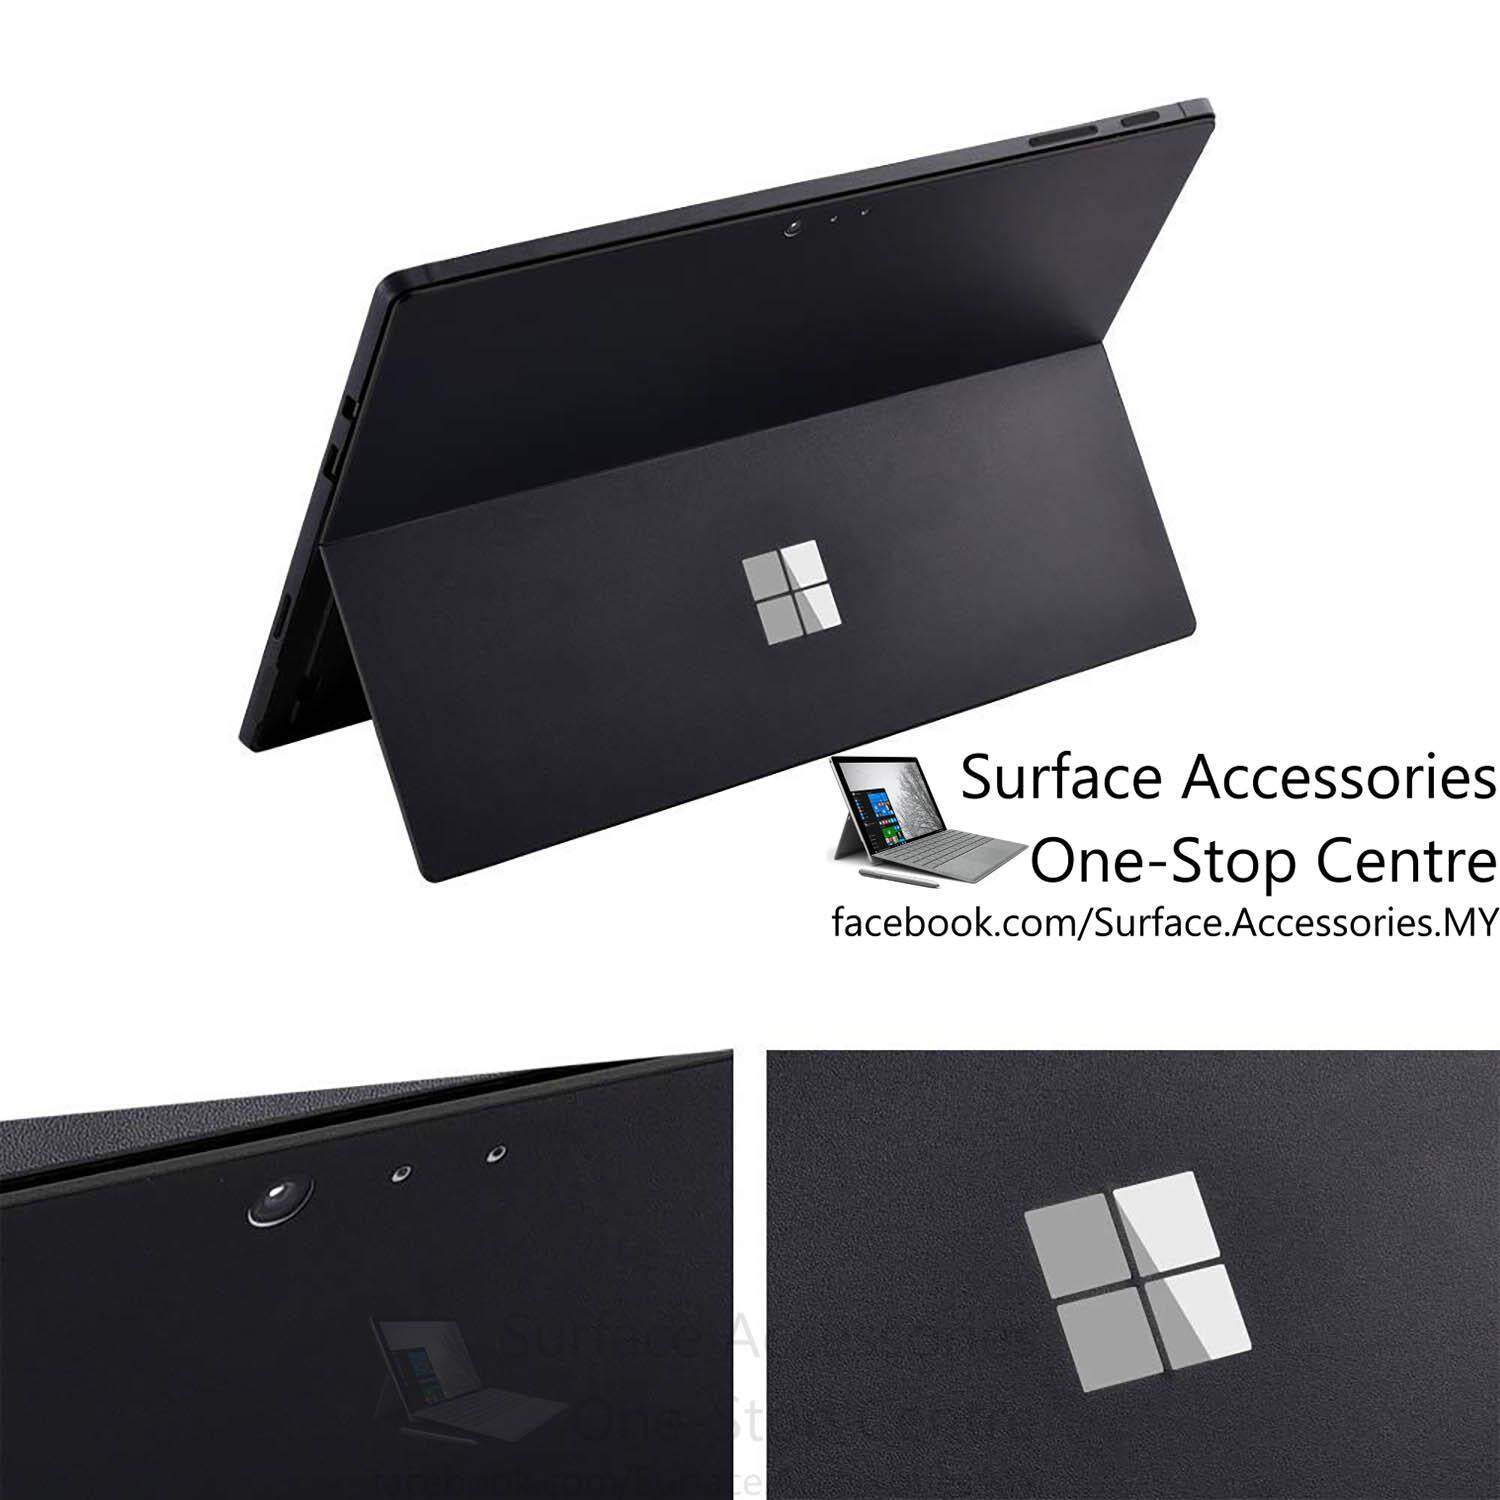 [MALAYSIA]Microsoft Surface Pro 6 Case Skin Case Cover Stand Protection Microsoft Surface Pro 6 Wrap Microsoft Surface Pro 6 Skin New Microsoft Surface Pro 6 Vinyl Wrap Surface Pro 6 Decal